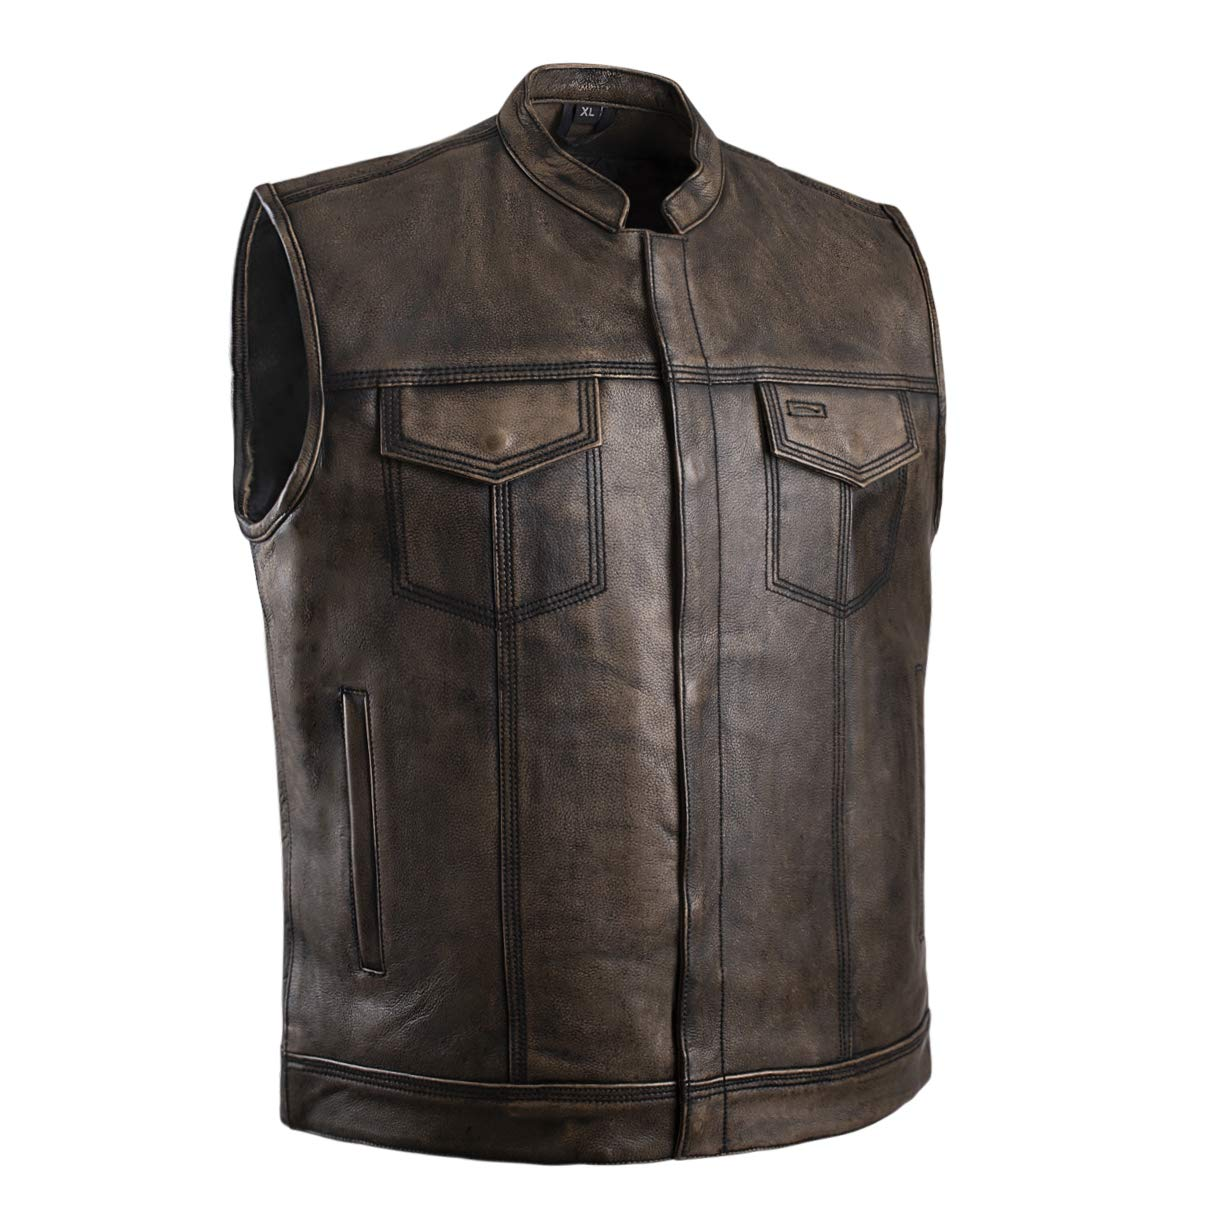 2XL Gray Distressed Top Quality Genuine Leather Mens Motorcycle Riders Vest